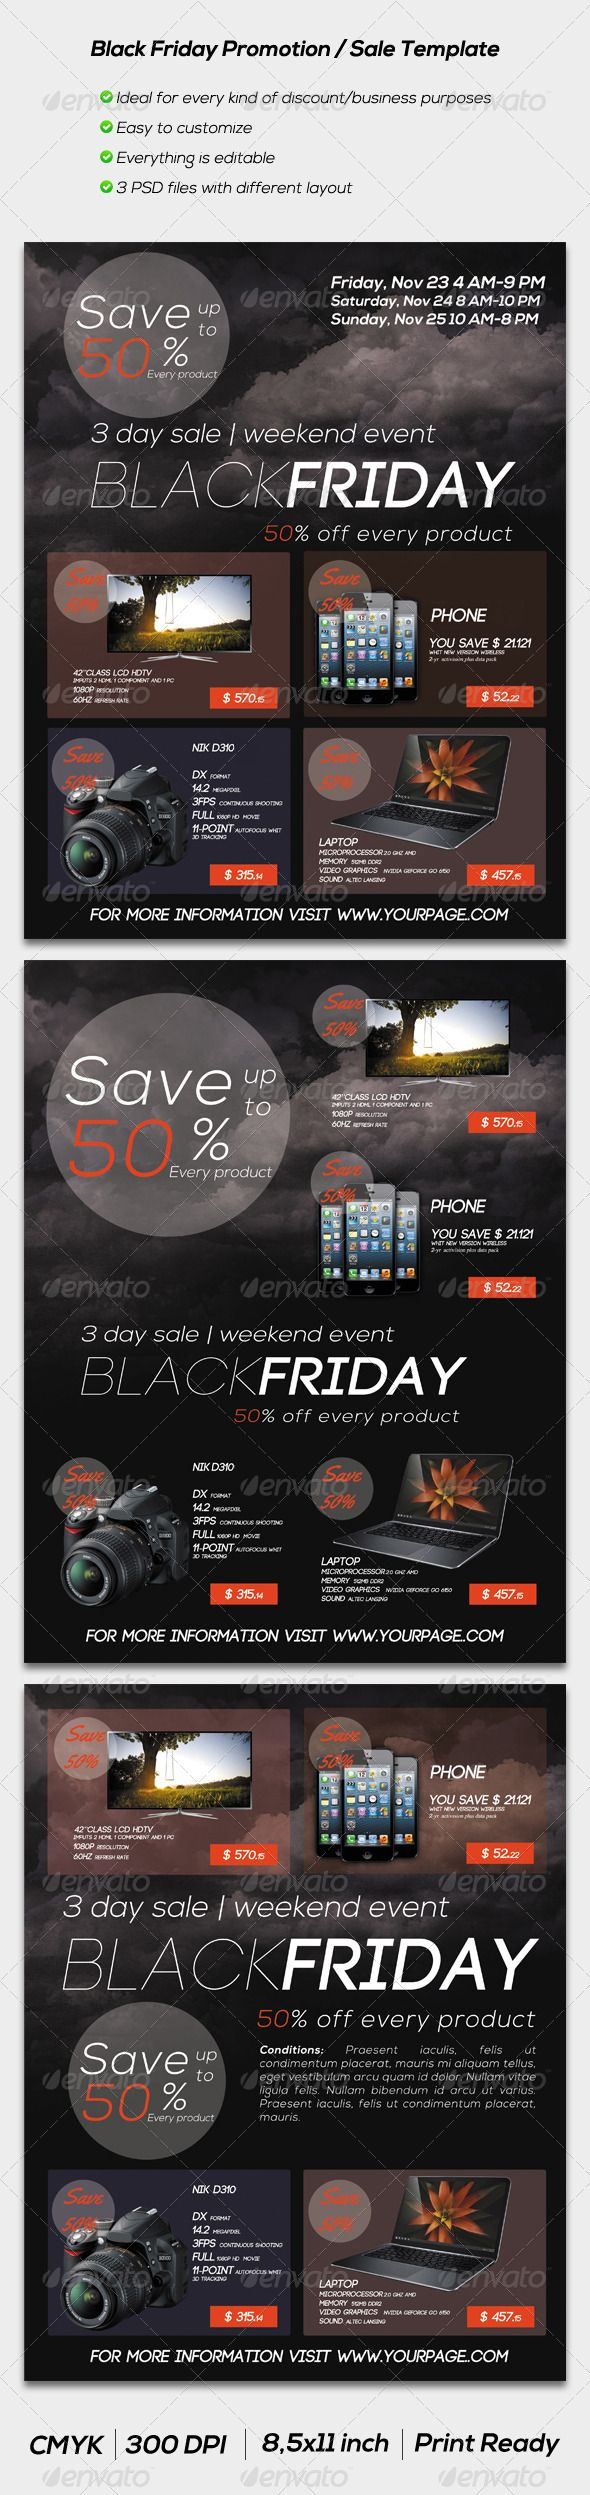 Black Friday Promotion / Sale Flyer Template #GraphicRiver Black Friday Promotion / Sale Flyer Template is ideal to promote your Company`s sale, promotion or discount campaigns. If you want professional, eye-catching, clean designed flyers, these premium templates could be a great choice for You. Can be useful for any type of shopping department, like: accessories, clothes, fashion, furniture, electronics, computers, office, appliances, gadgets, mobile phones, health or any other purposes…